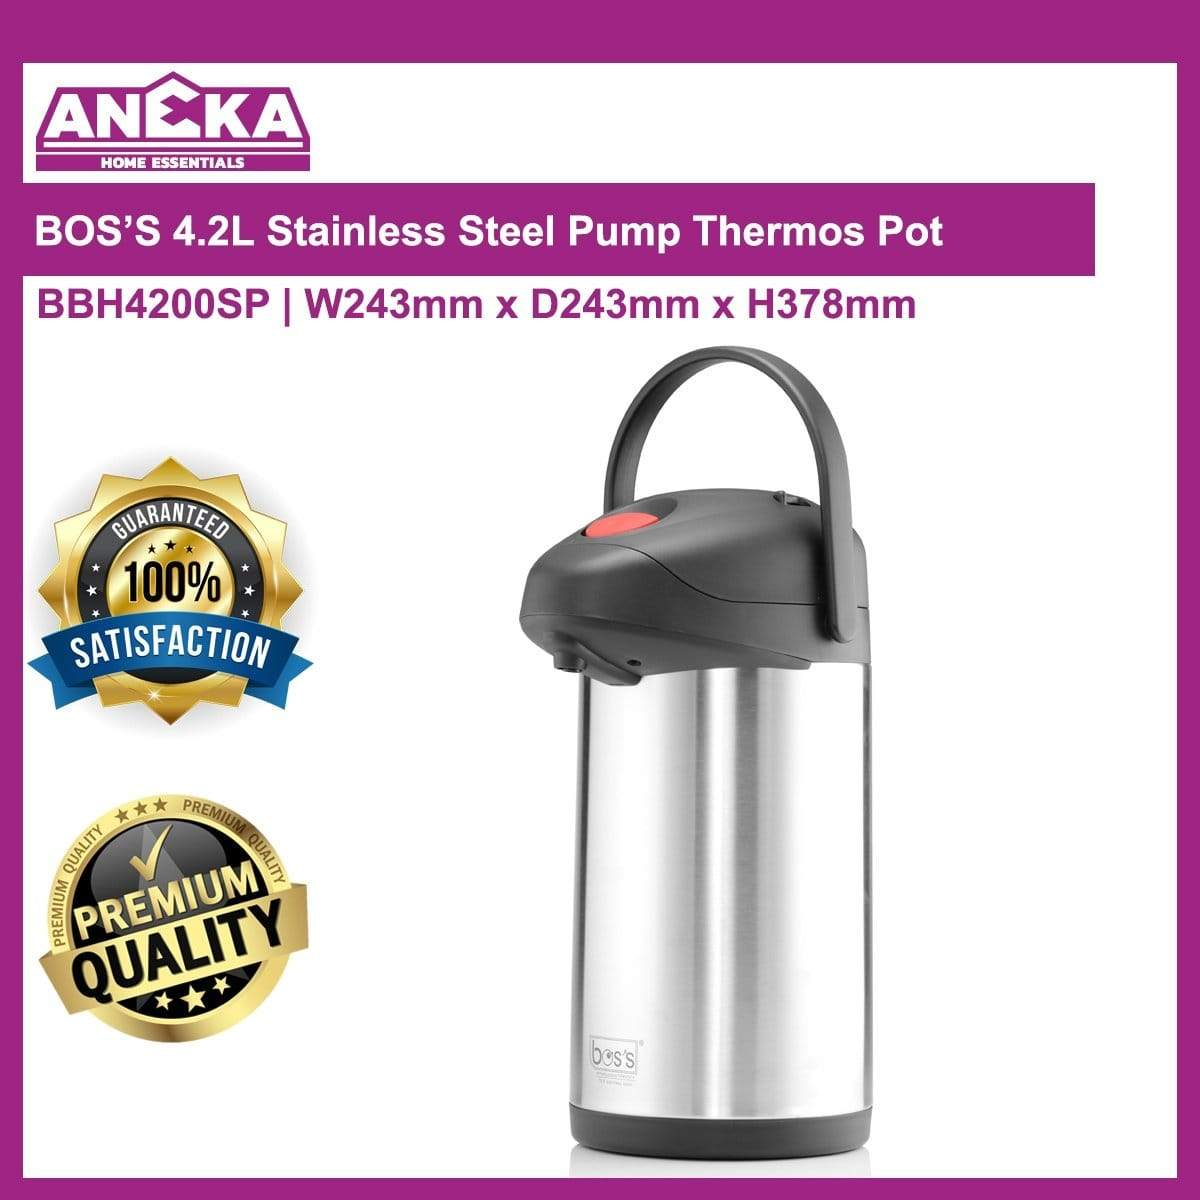 BBH4200SP 4.2lt BOS'S Stainless Steel Pump Pot